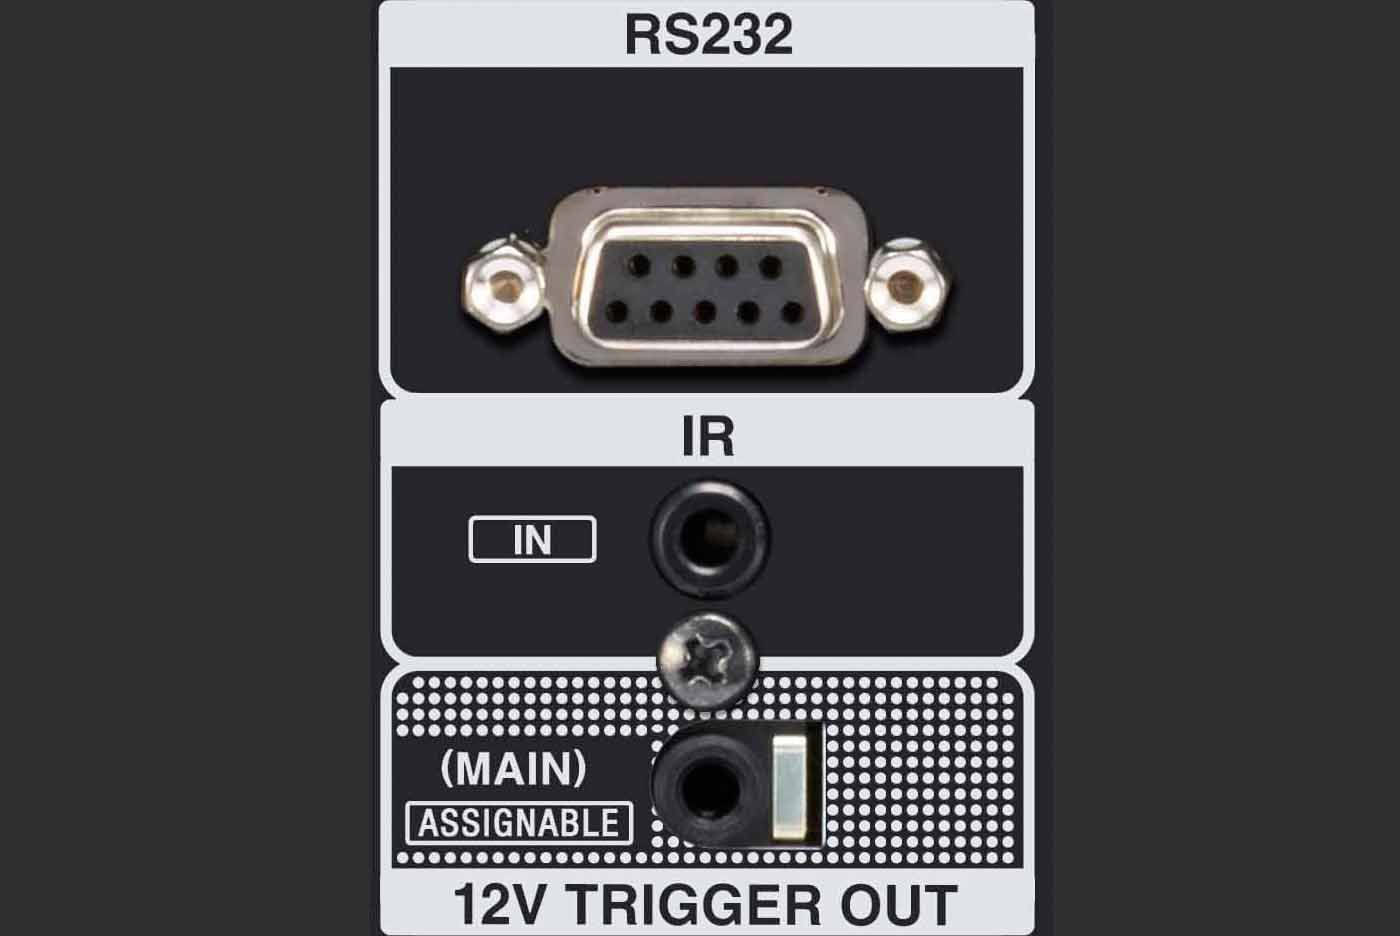 The Guide To Home Theater Av Surround Sound Receiver Connections Basics Of Sample Wiring Diagram My Onkyo Tx Nr787 Rs232 Ir Sensor Cable 12v Trigger